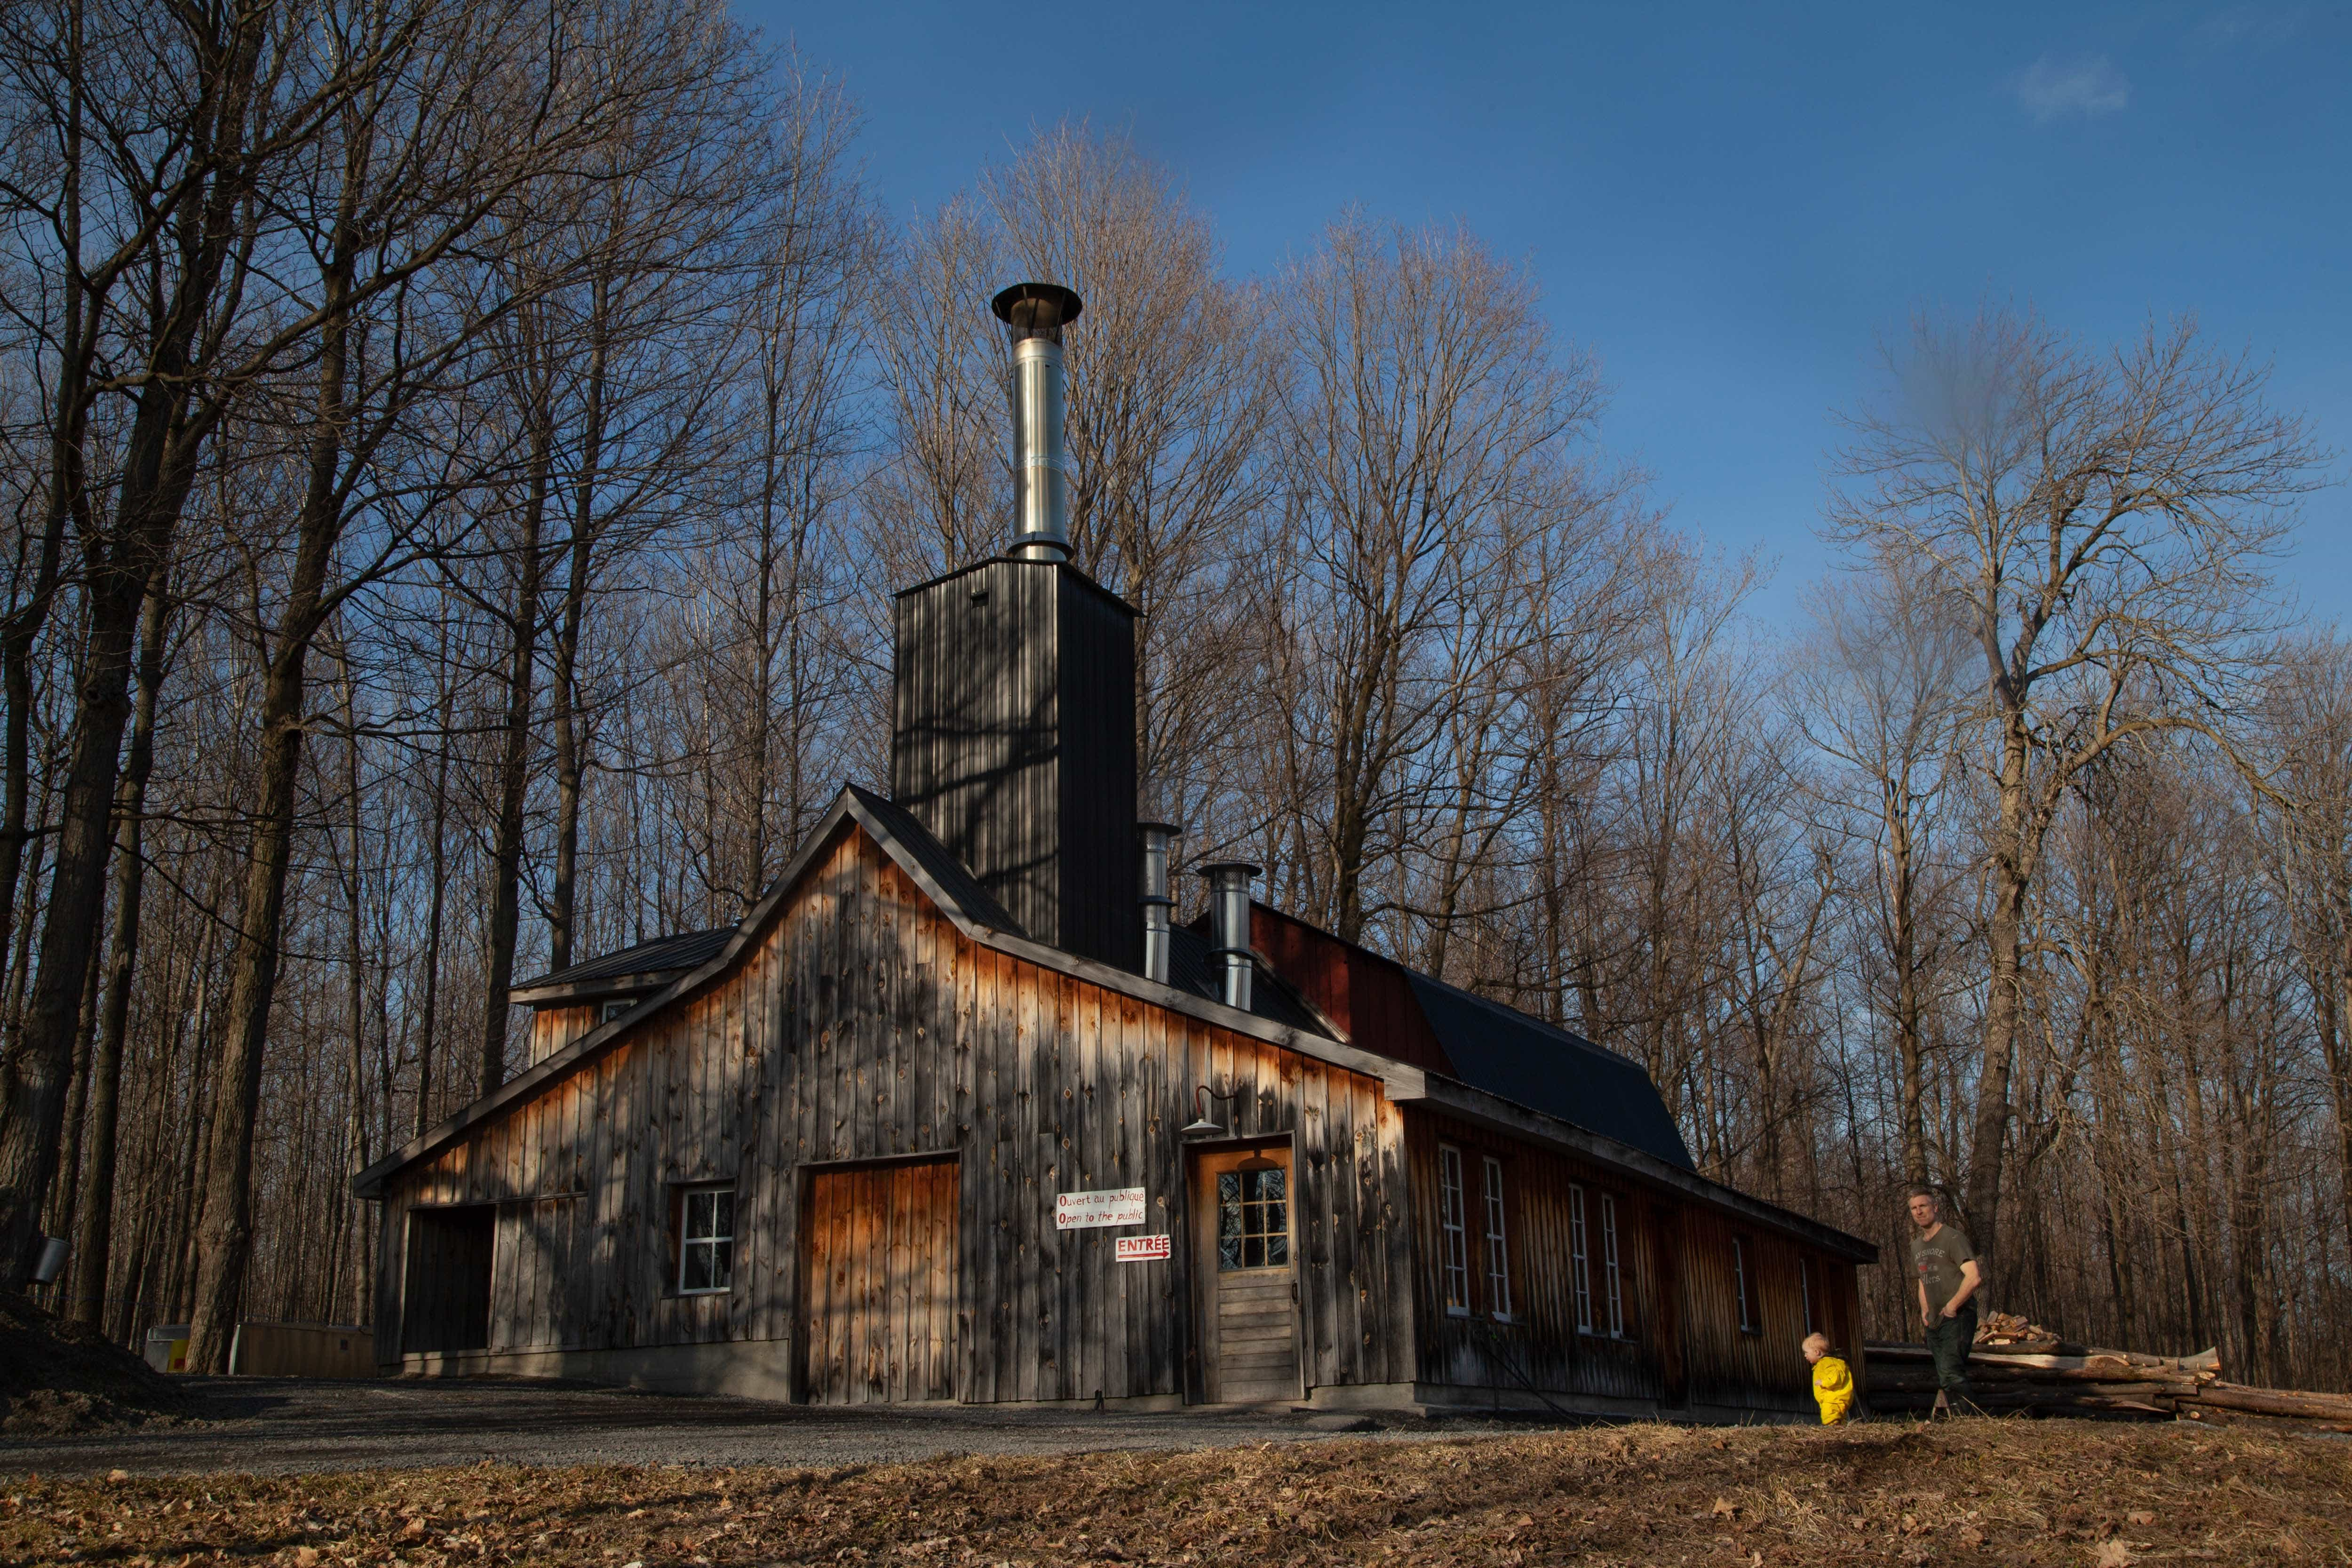 In the Canadian sugaring industry, maple syrup producing is often a family affair. Three generations of the St. Pierre family can be found working around their maple camp.